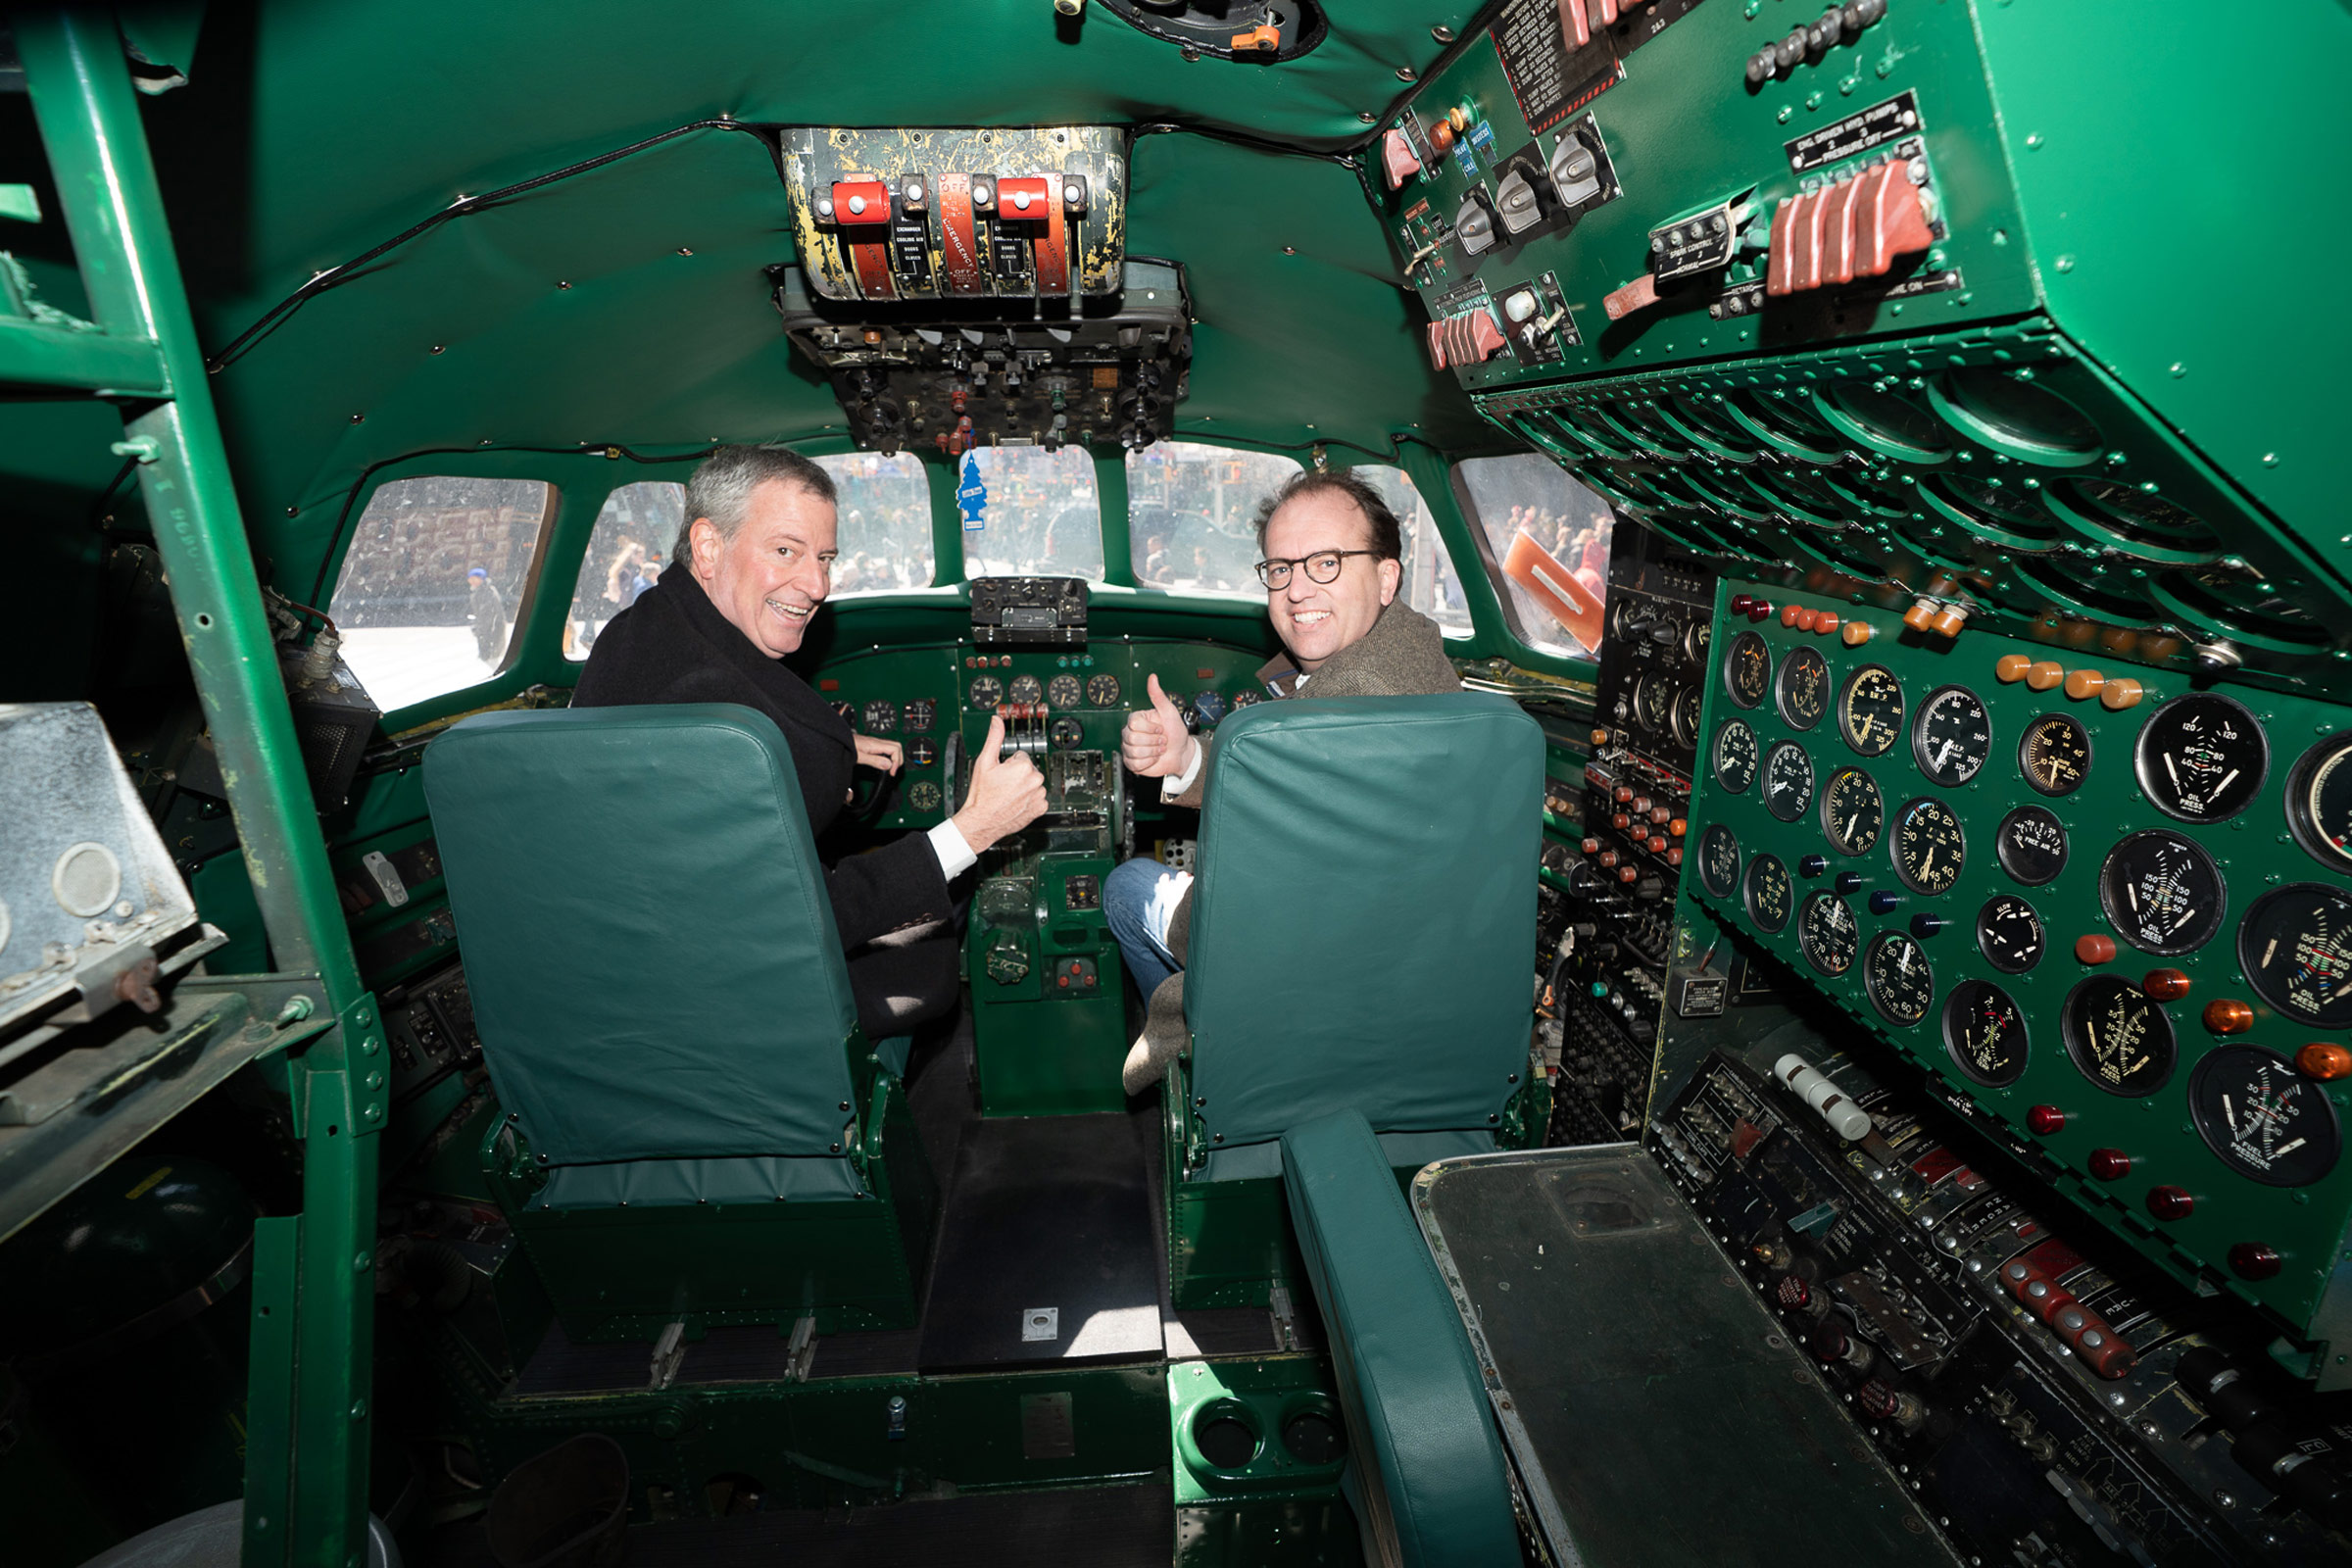 New York City Mayor Bill de Blasio (left) takes the controls in Connie's cockpit with CEO and Managing Partner of MCR and MORSE Development Tyler Morse on March 23, 2019.